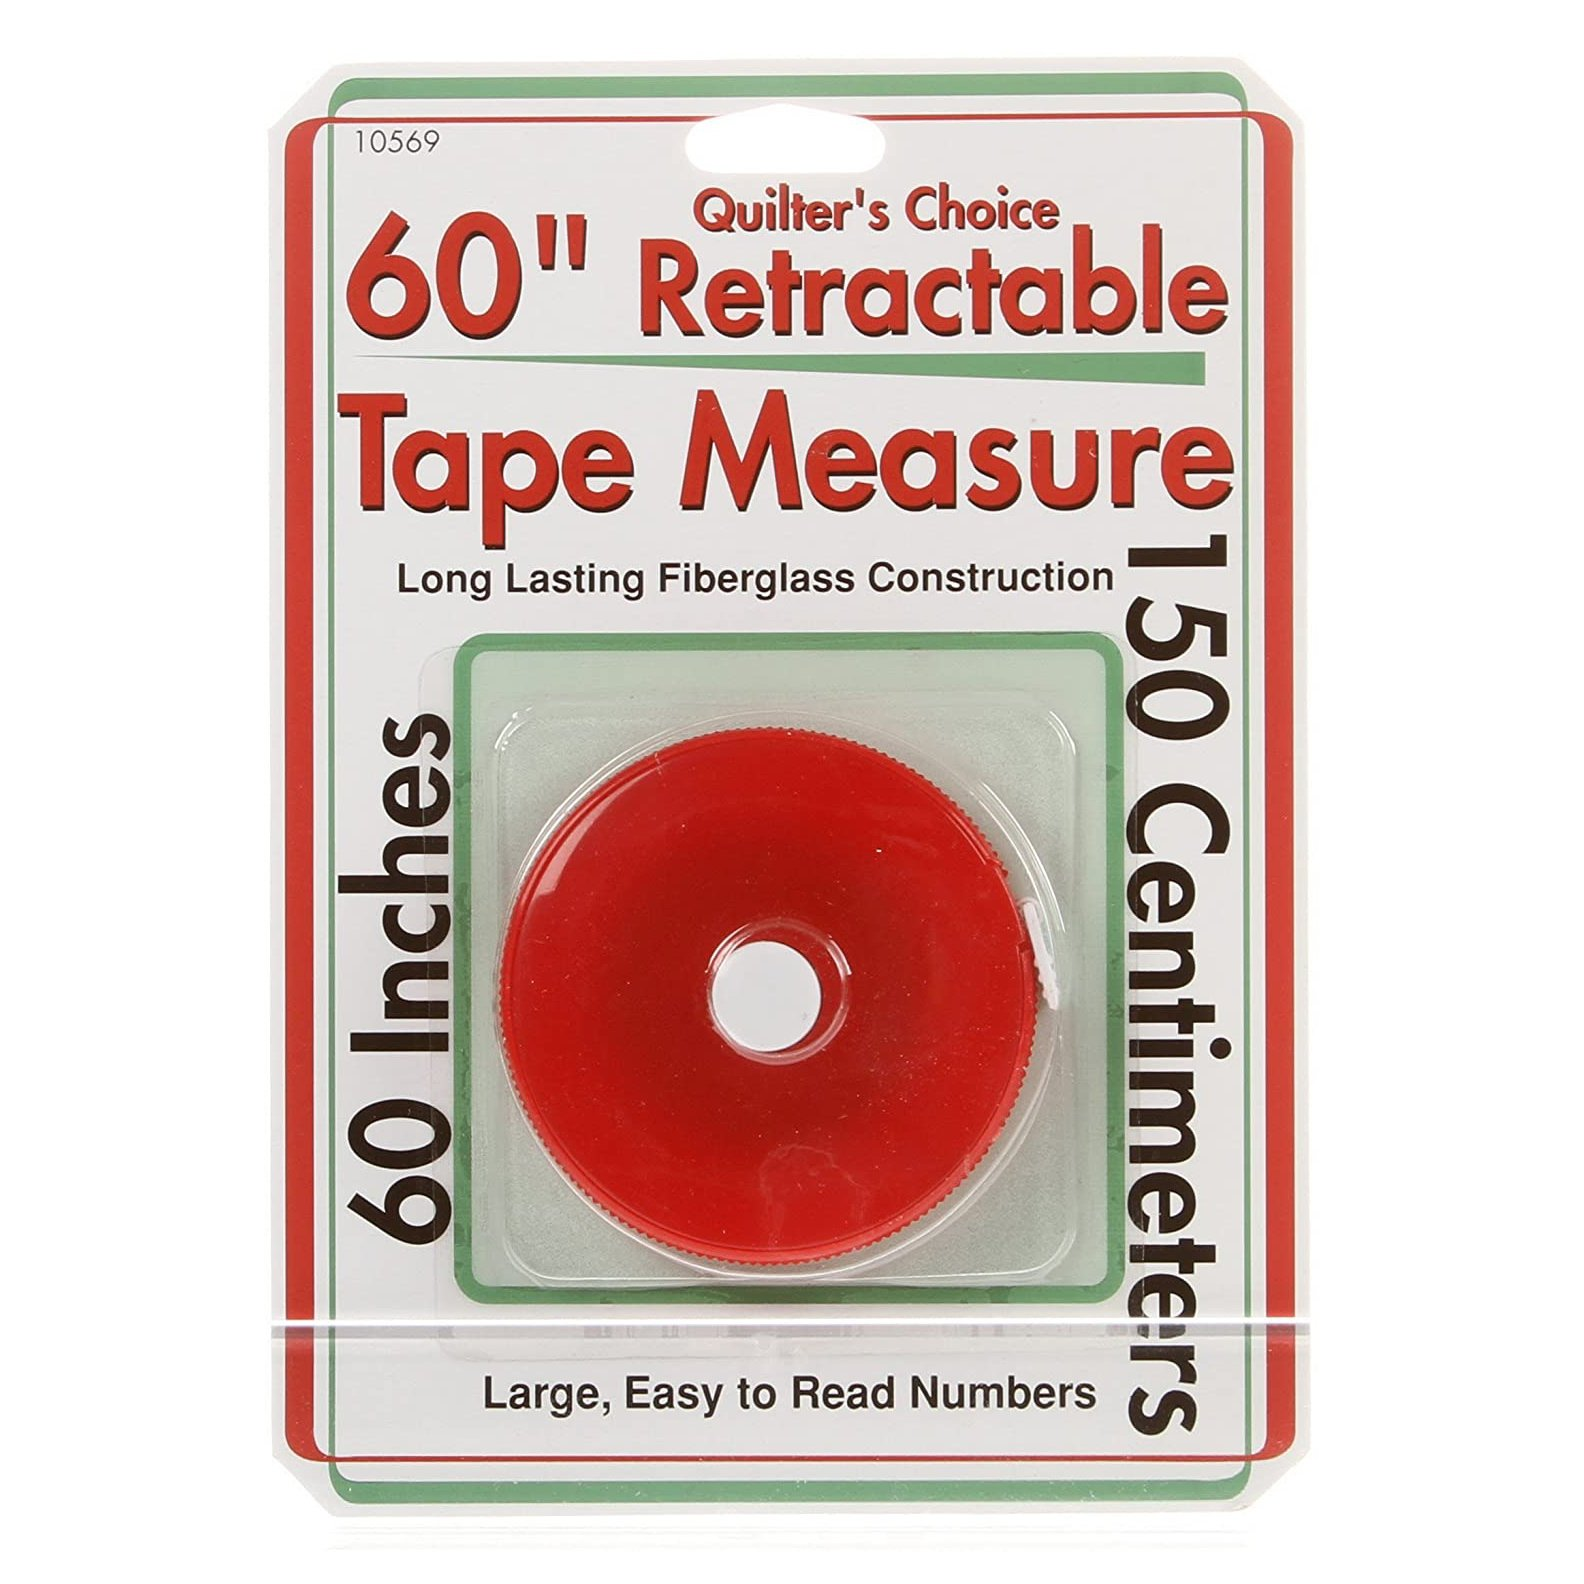 Quilter's Choice Retractable Tape Measure - 60 (150cm)